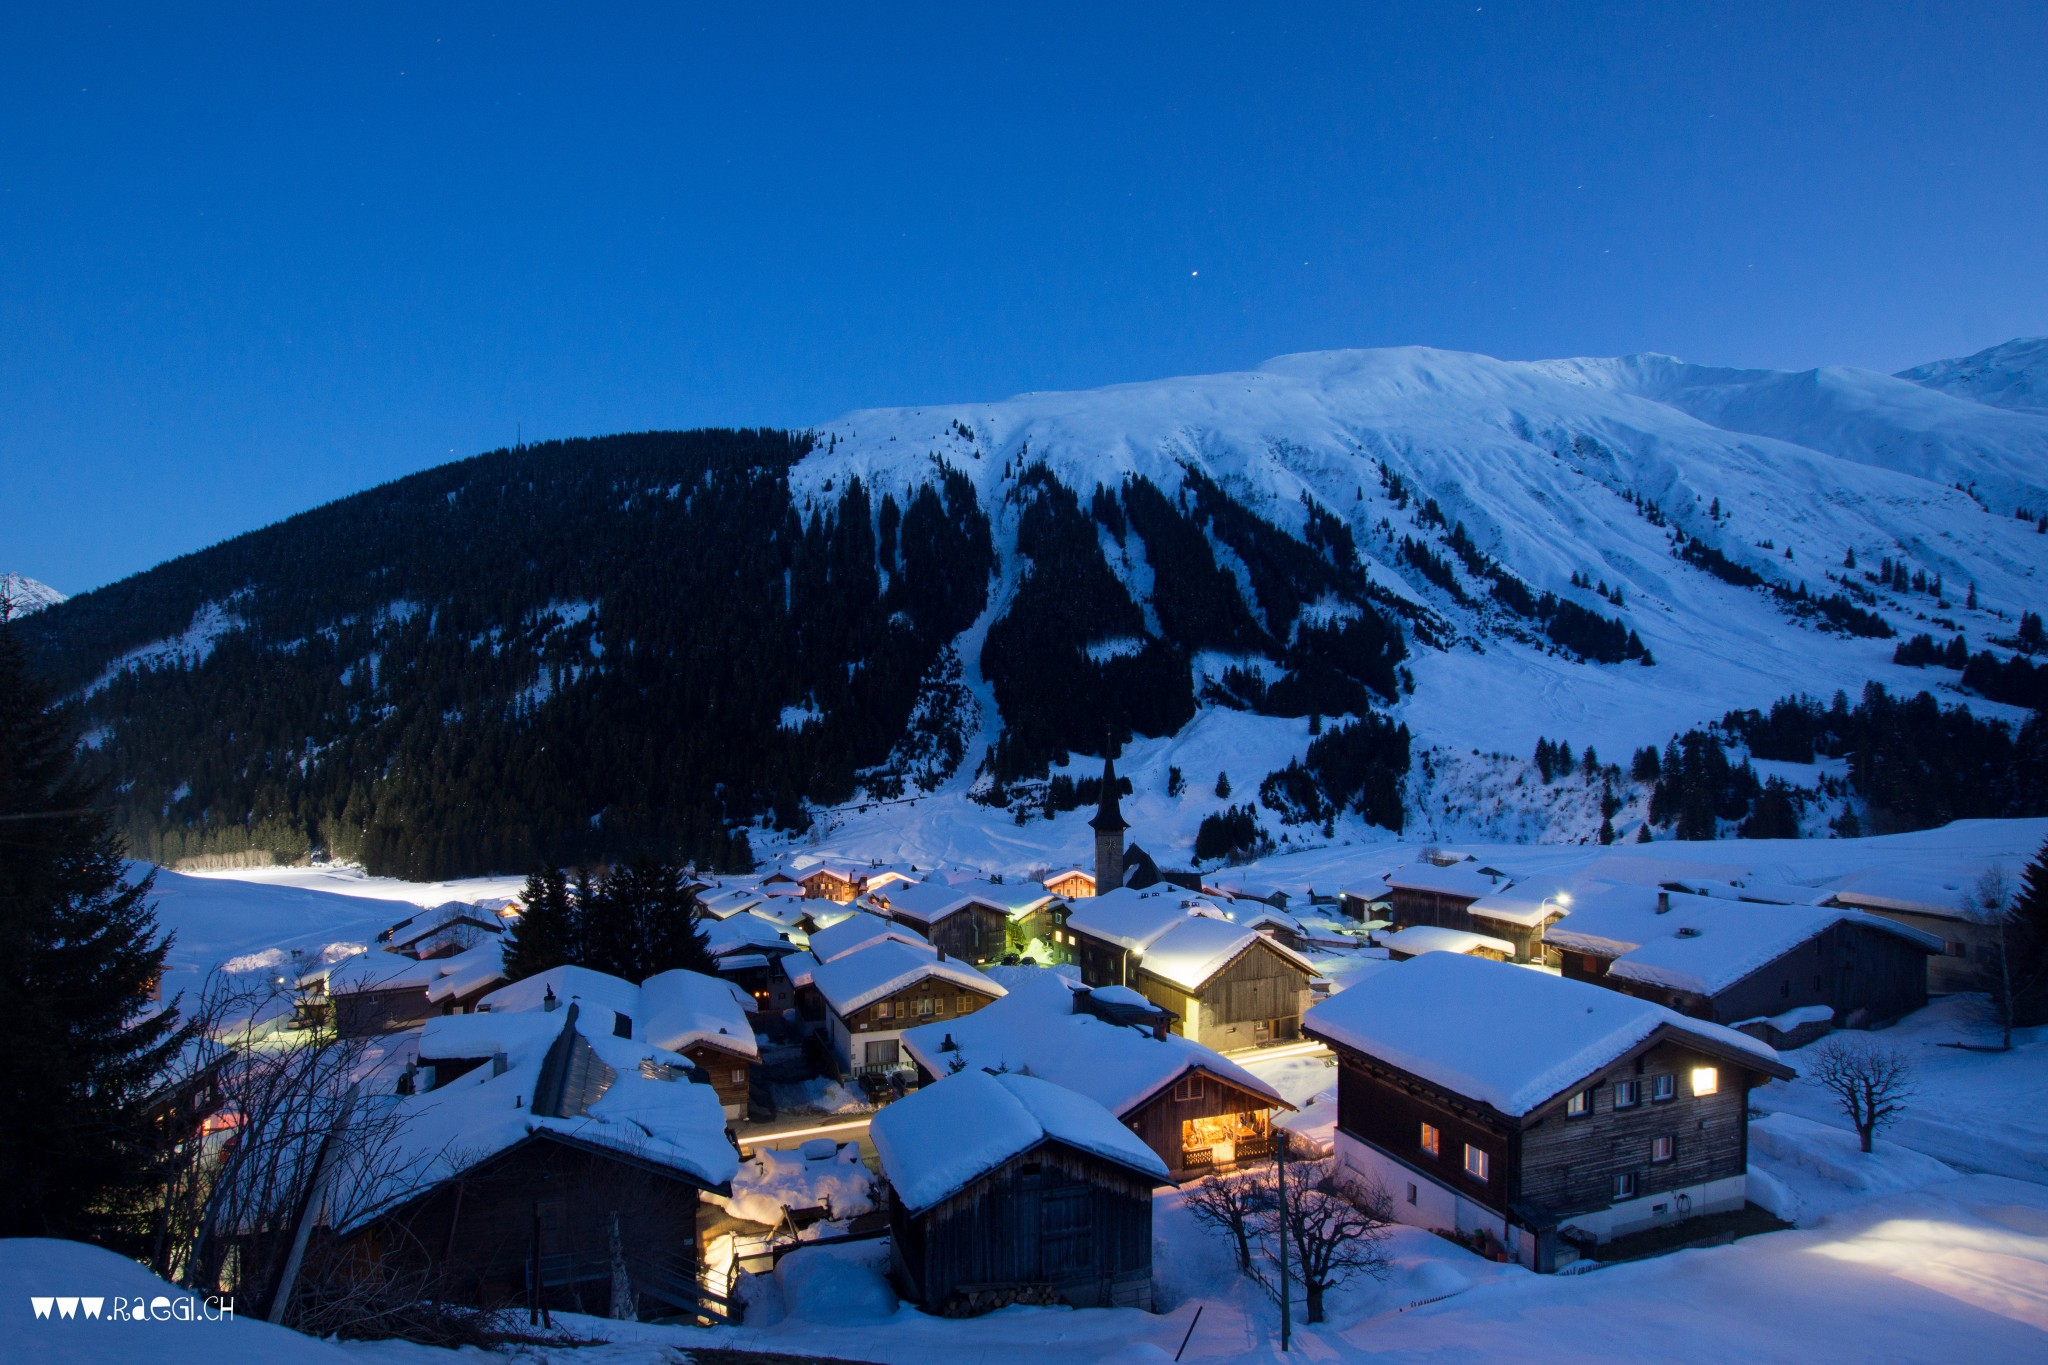 Rueras by night